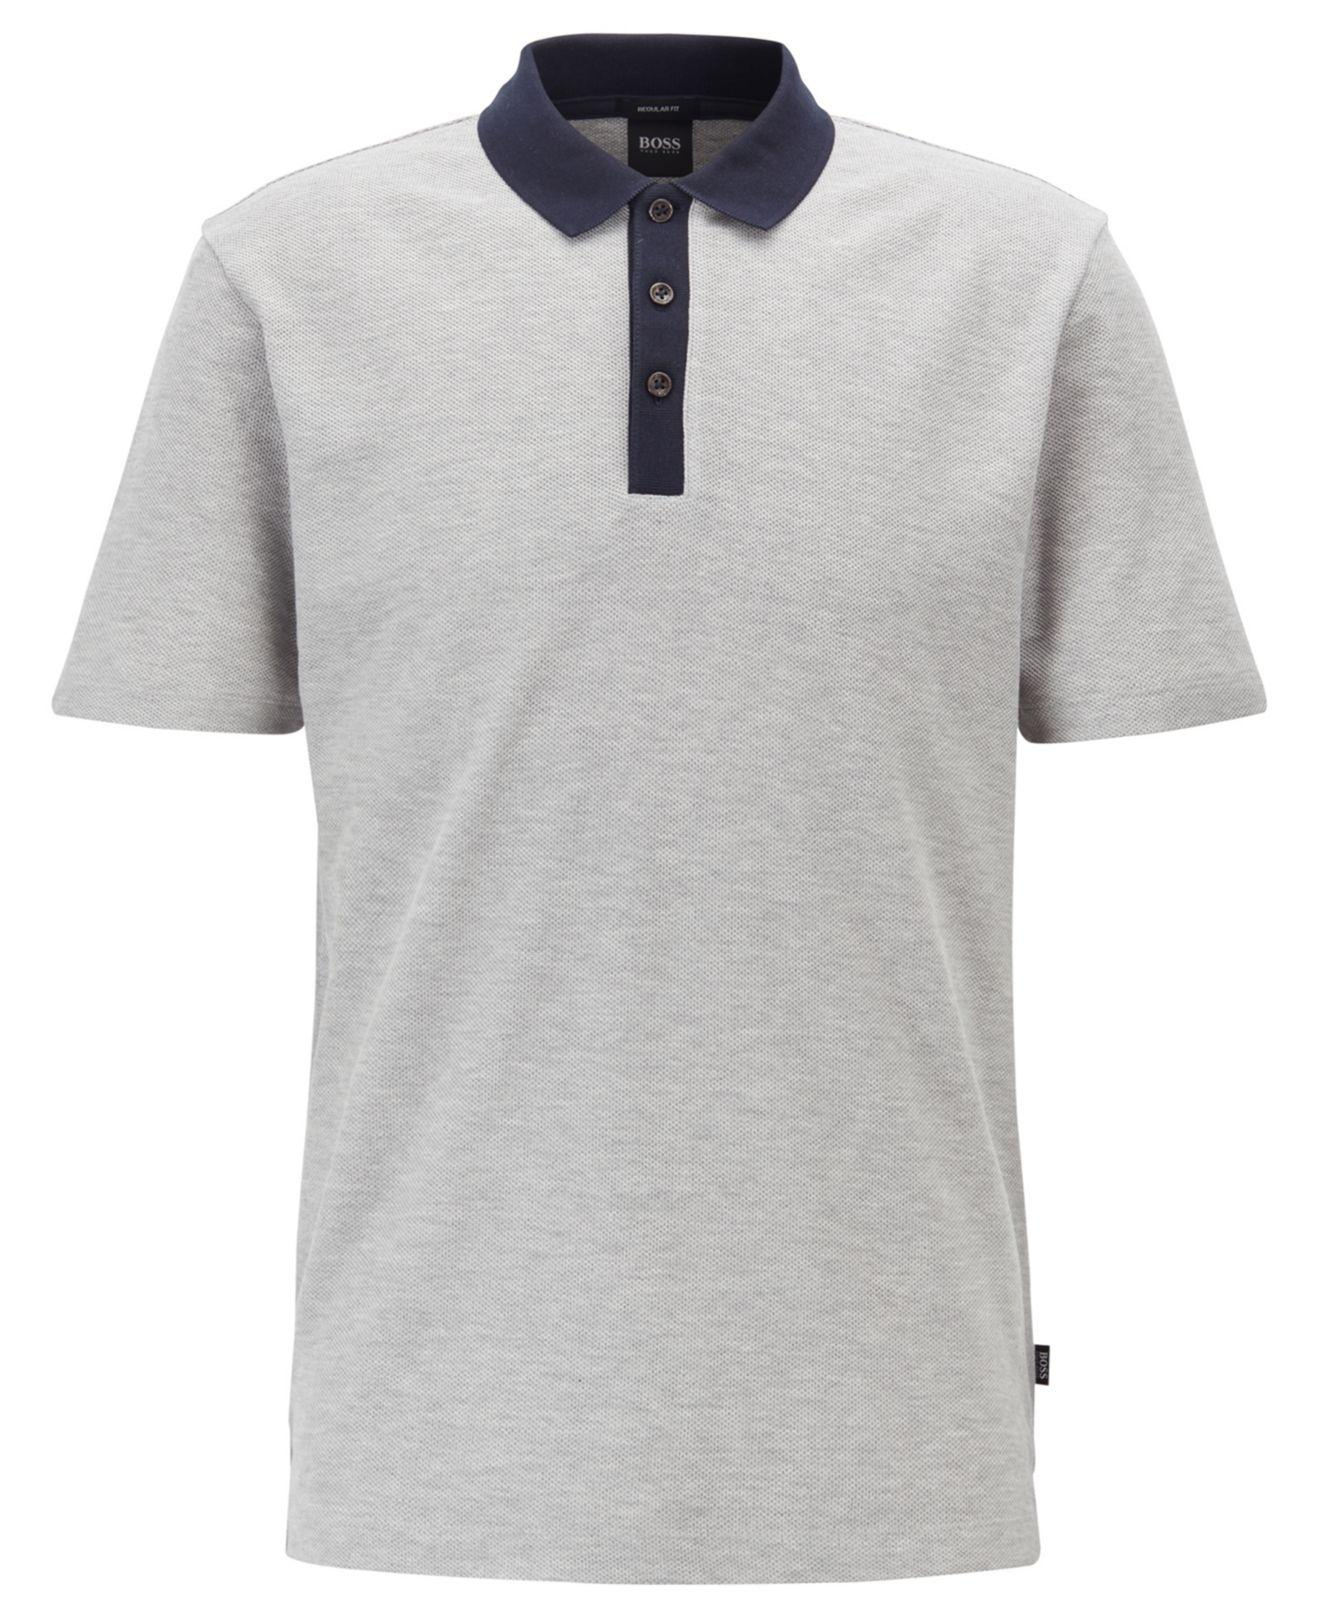 2cba4910 BOSS - Gray Regular-fit Polo Shirt In Honeycomb Cotton Piqué for Men -  Lyst. View fullscreen